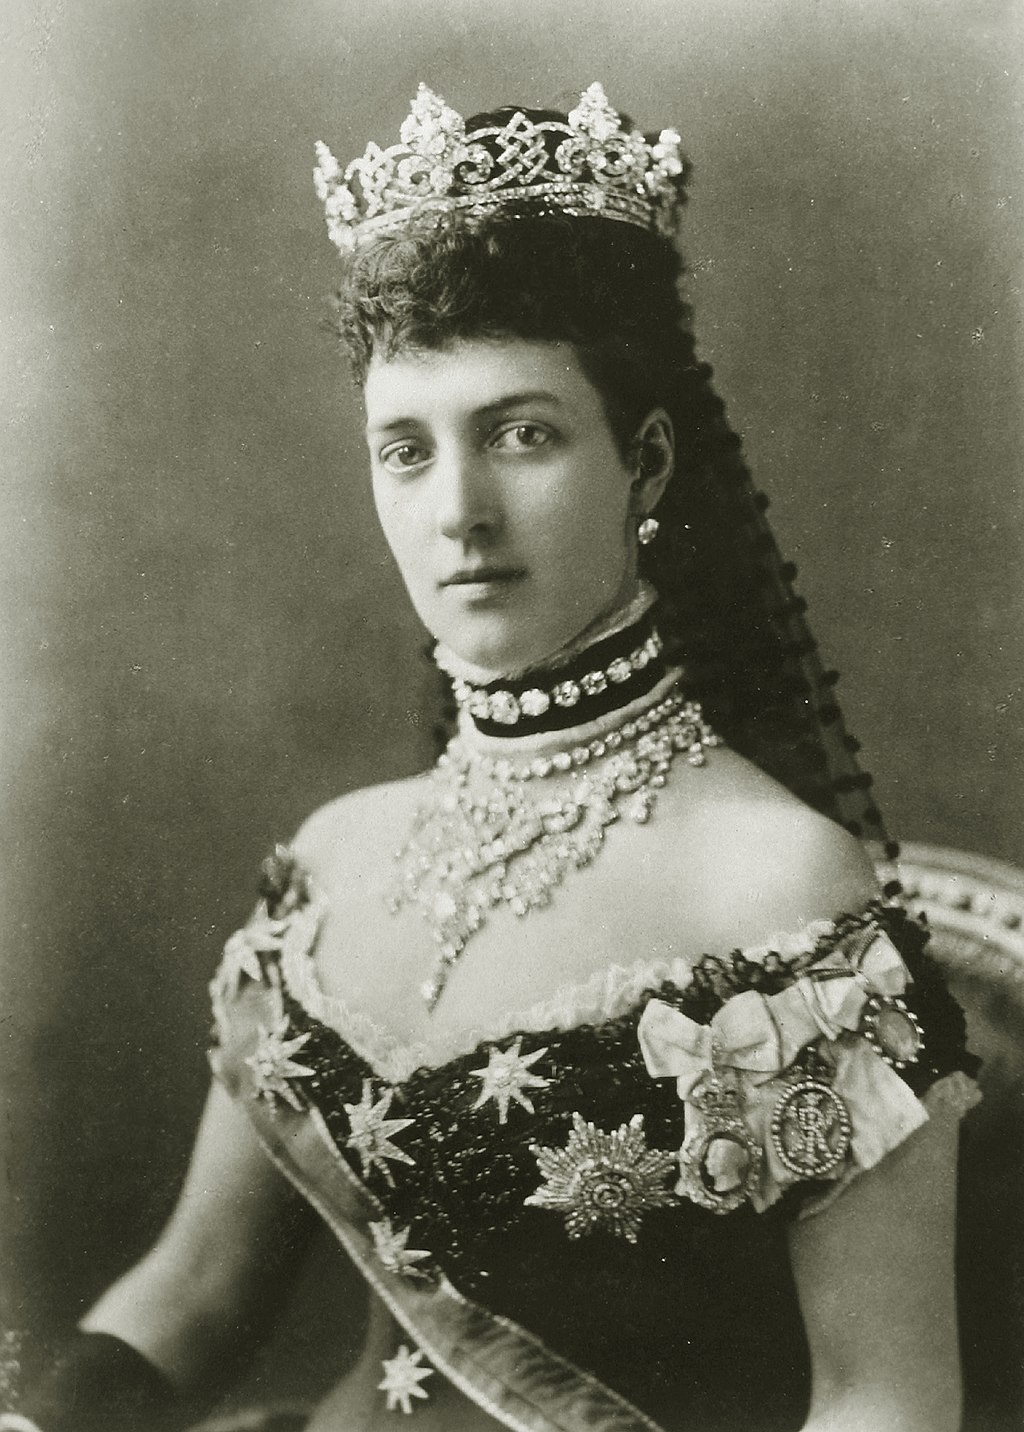 Kristin Holt | Victorian-era Hair Care. Photograph of Alexandra of Denmark, Princess of Wales, later Queen consort of the United Kingdom. Image: Wikimedia, Public Domain.